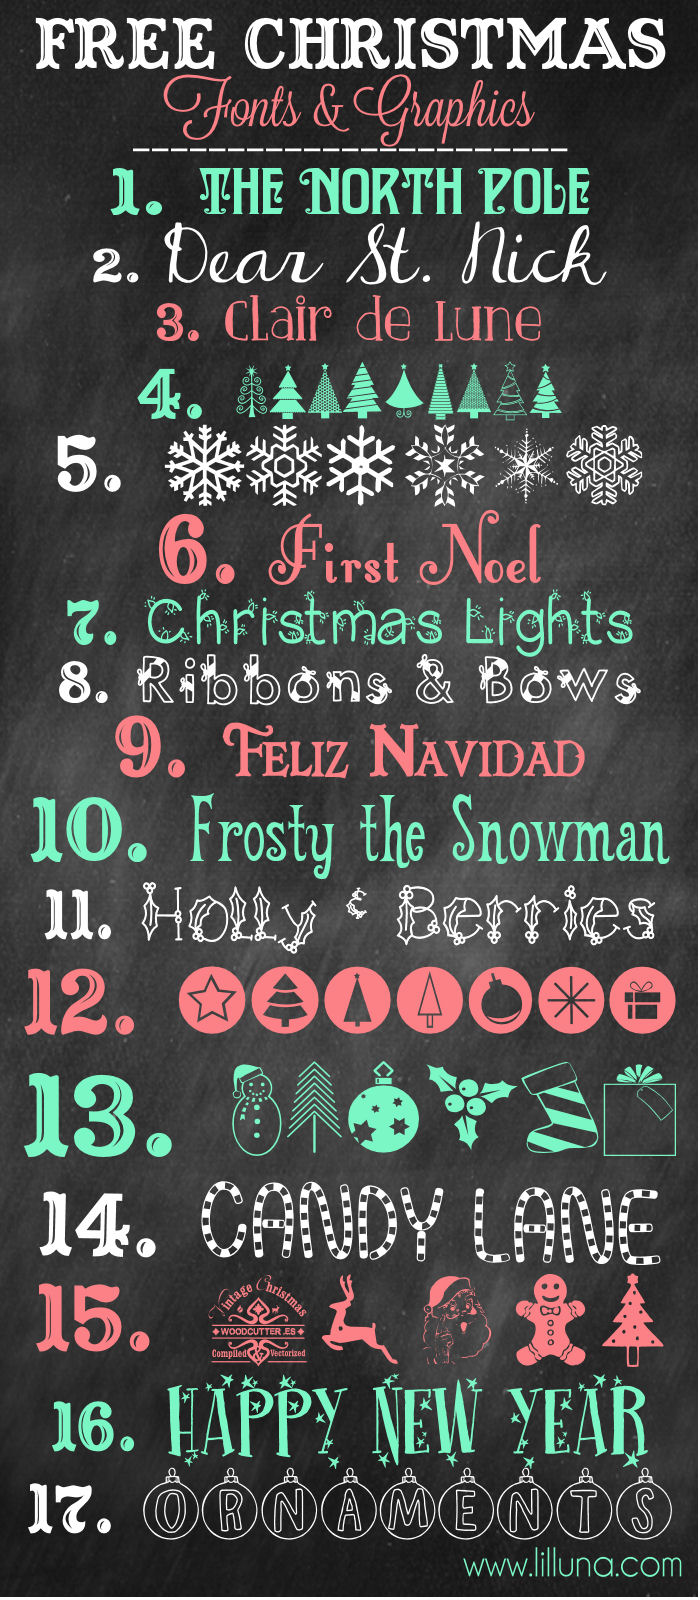 more favorite free christmas fonts and graphics to download and use lillunacom - Christmas Fonts Free